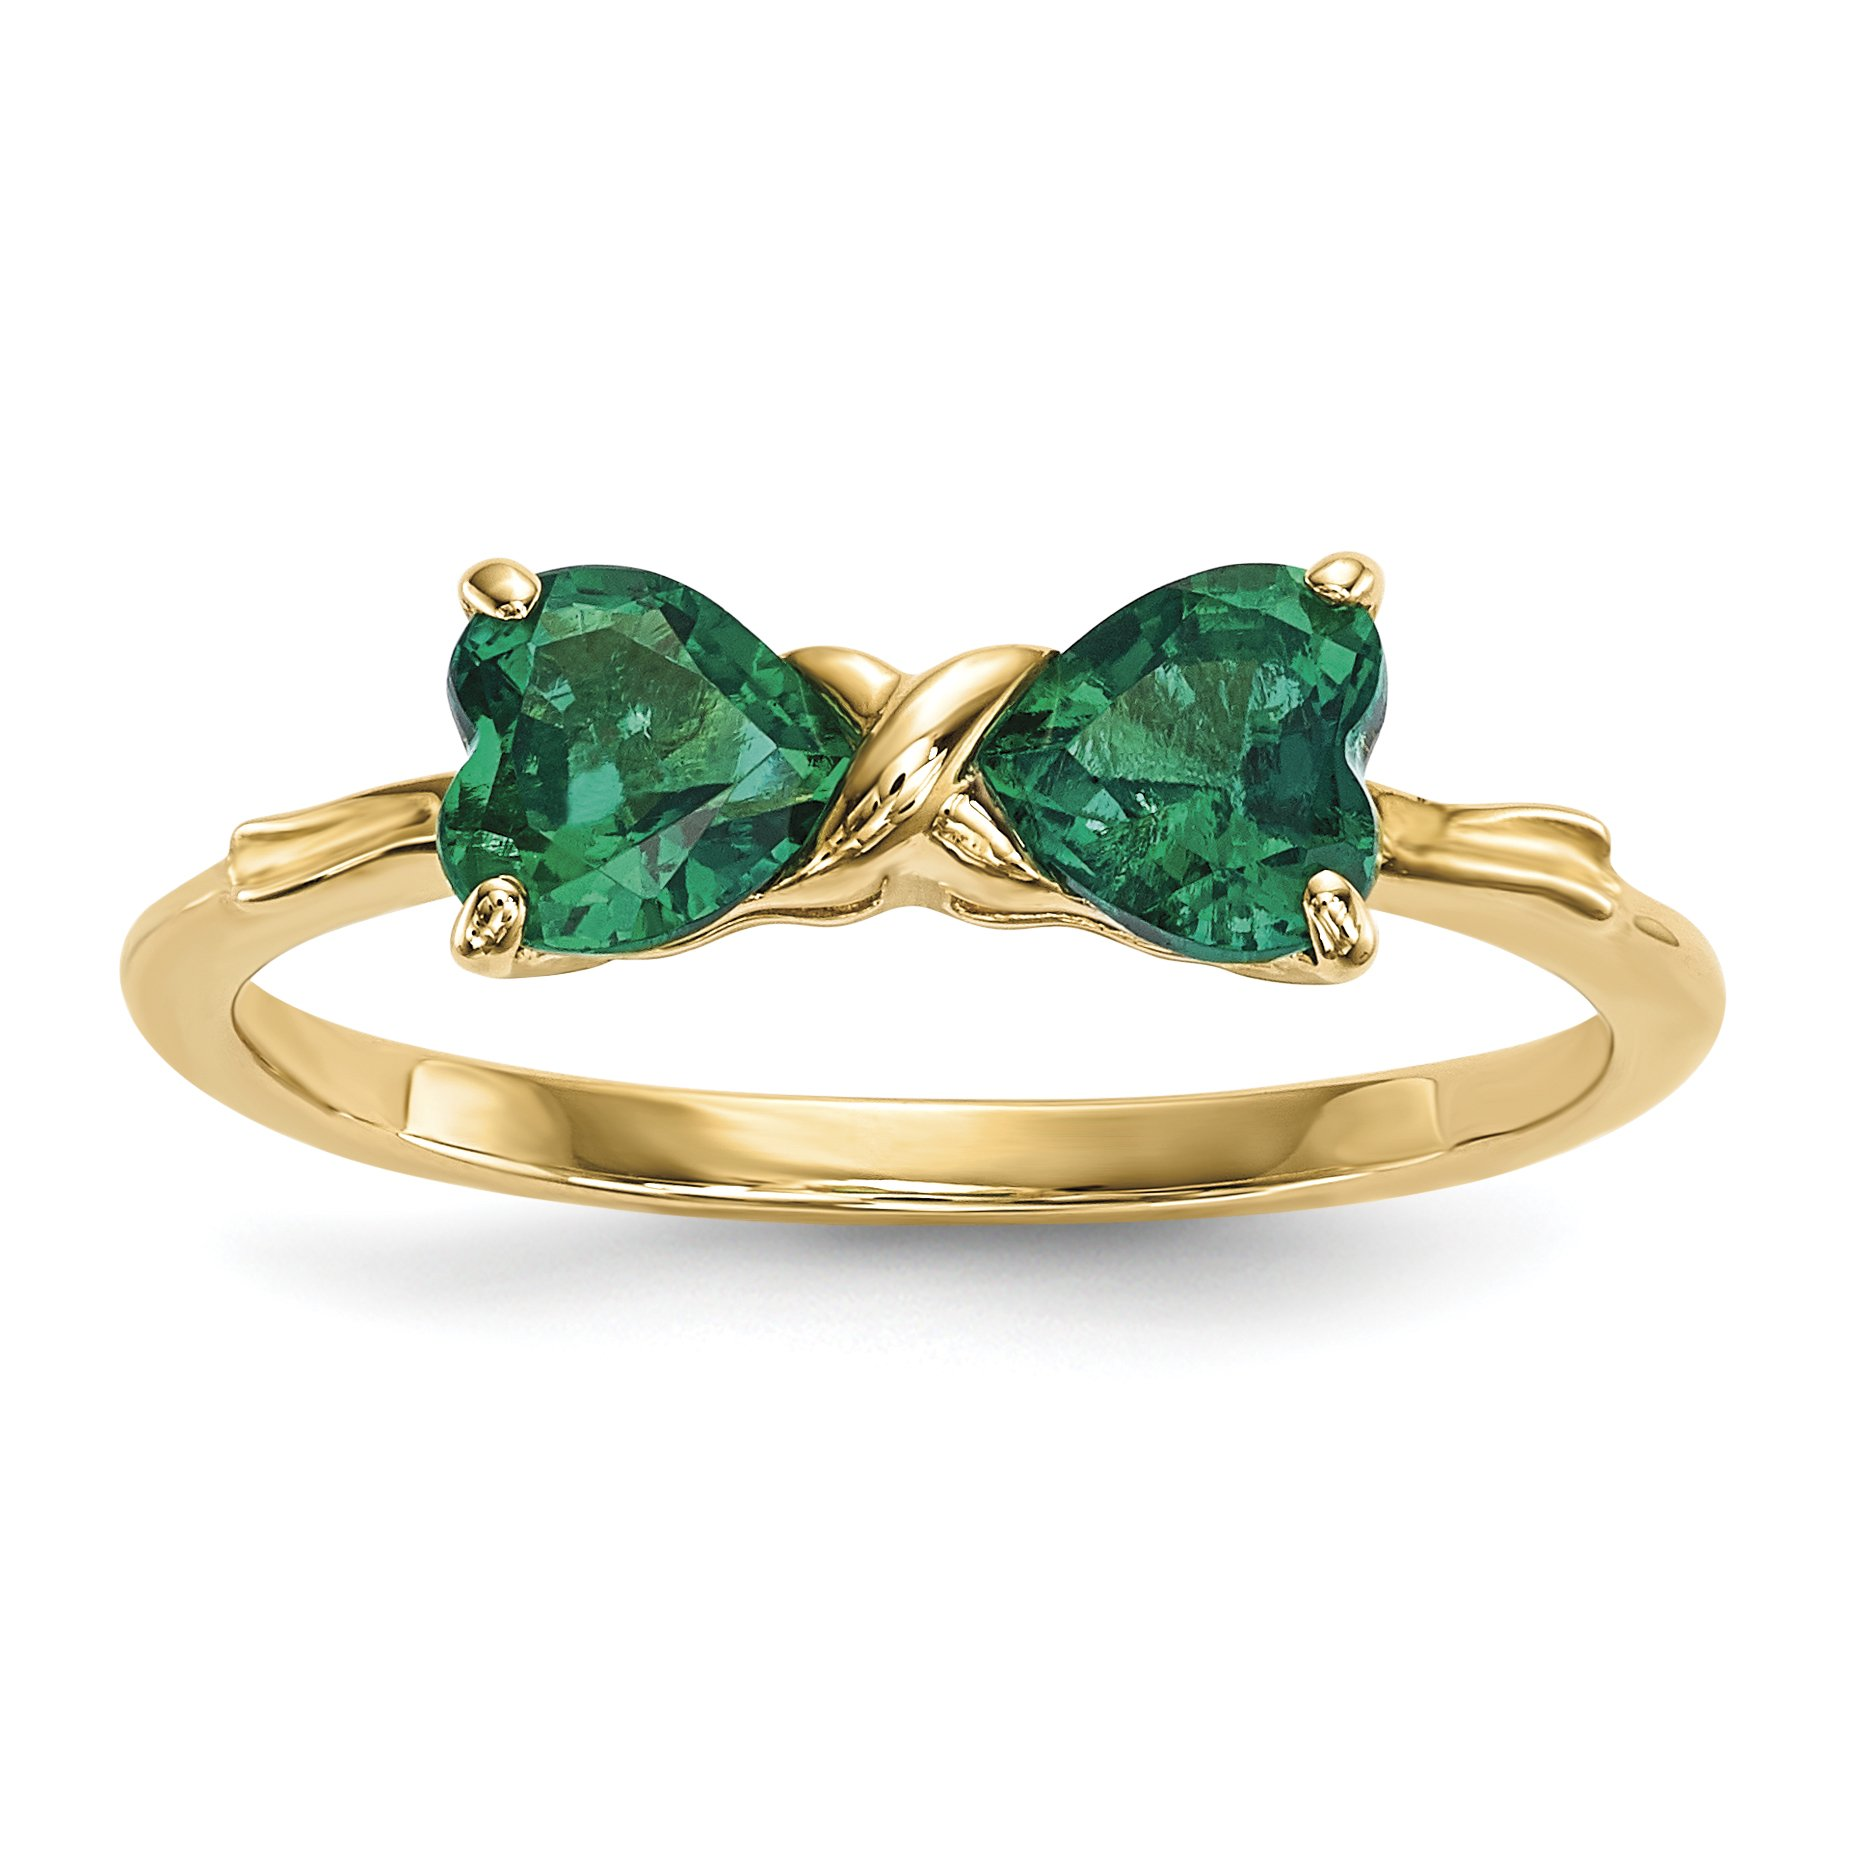 ICE CARATS 14k Yellow Gold Created Green Emerald Bow Band Ring Size 7.00 Birthstone May Set Style Fine Jewelry Gift Set For Women Heart